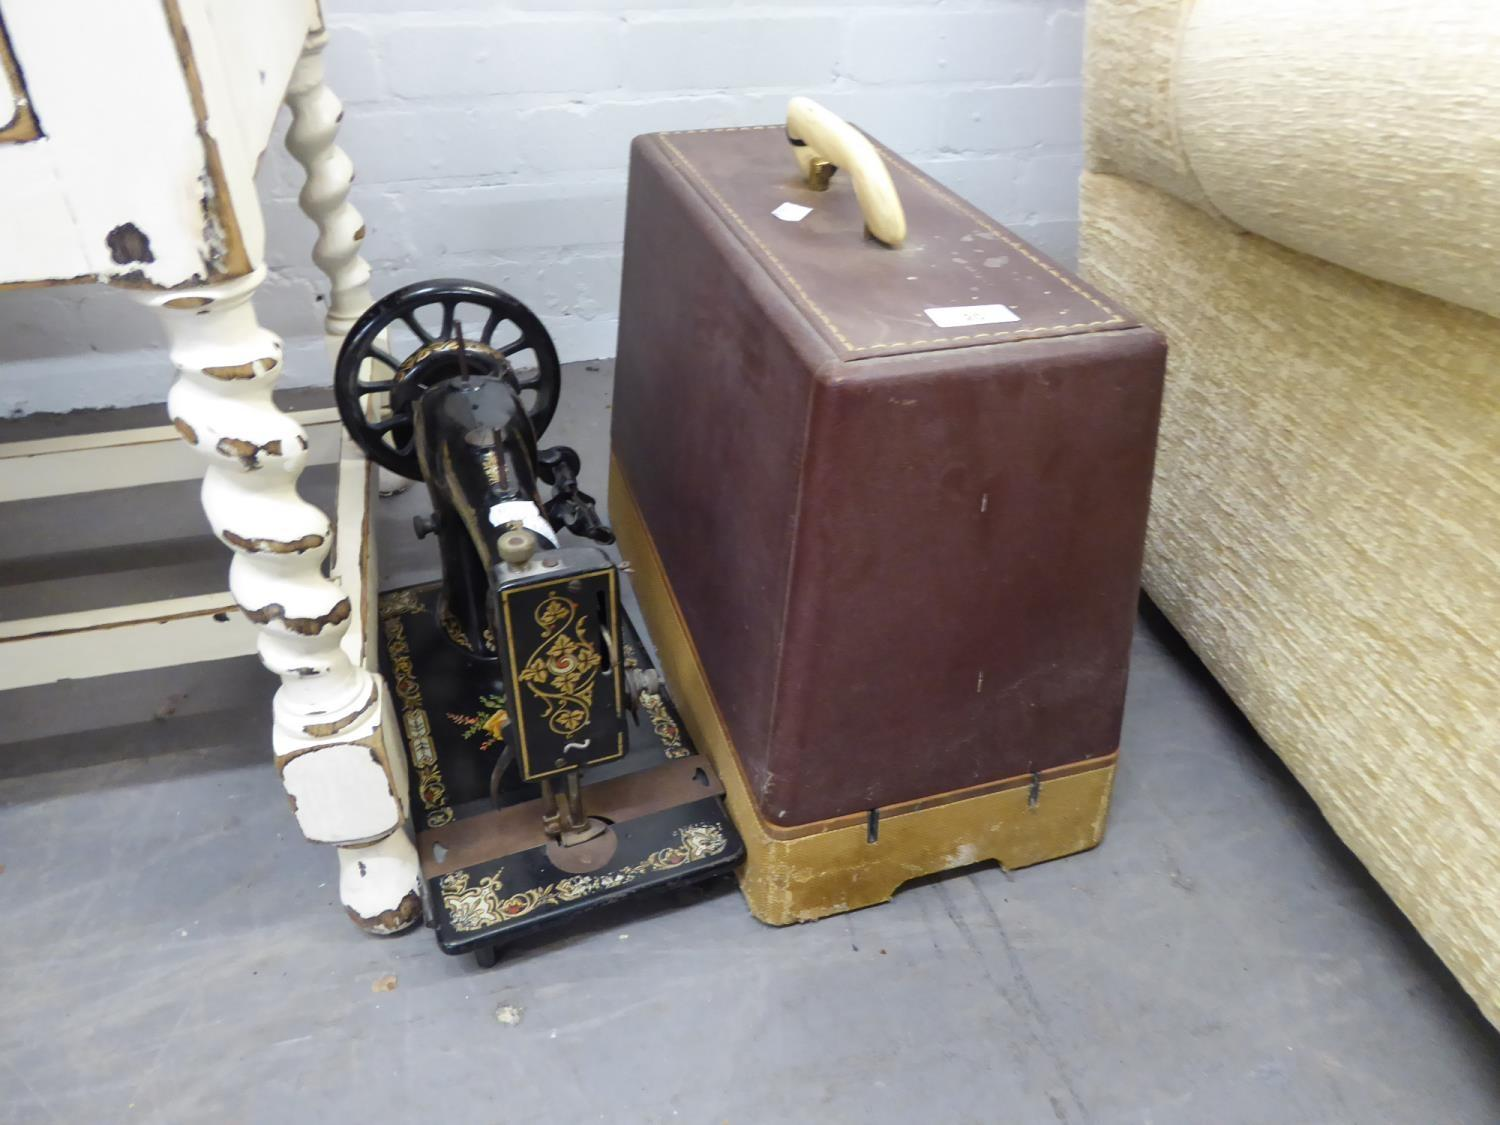 Lot 20 - A JONES SEWING MACHINE WITH DECORATIVE FLORAL DESIGN AND A SINGER 185K SEWING MACHINE IN CARRYING